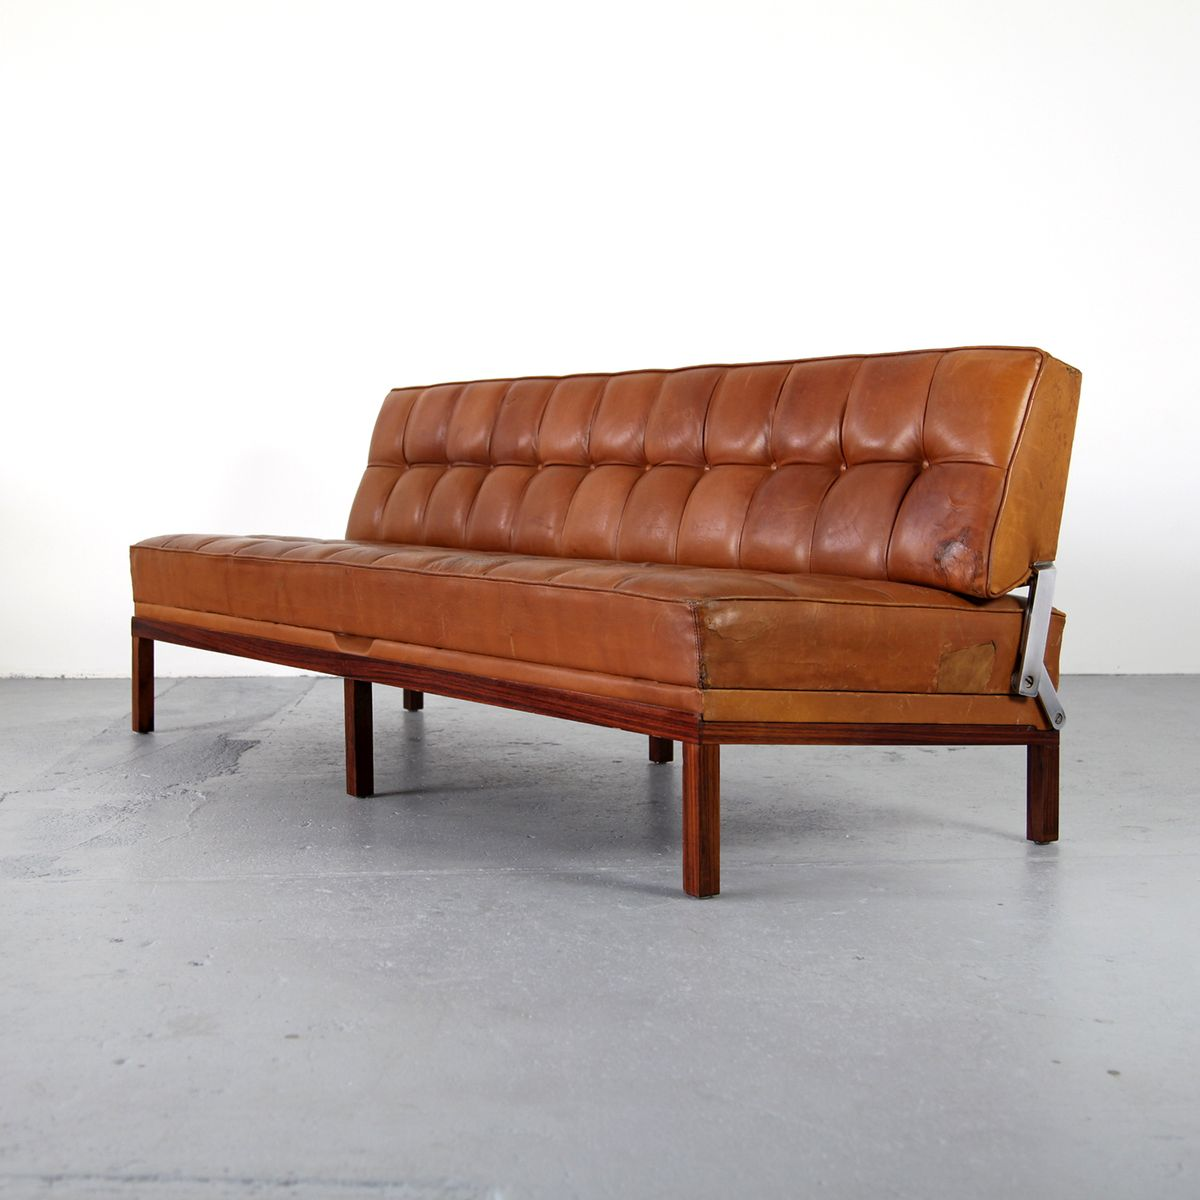 daybed sofa constanze by johannes spalt for wittman 1961. Black Bedroom Furniture Sets. Home Design Ideas